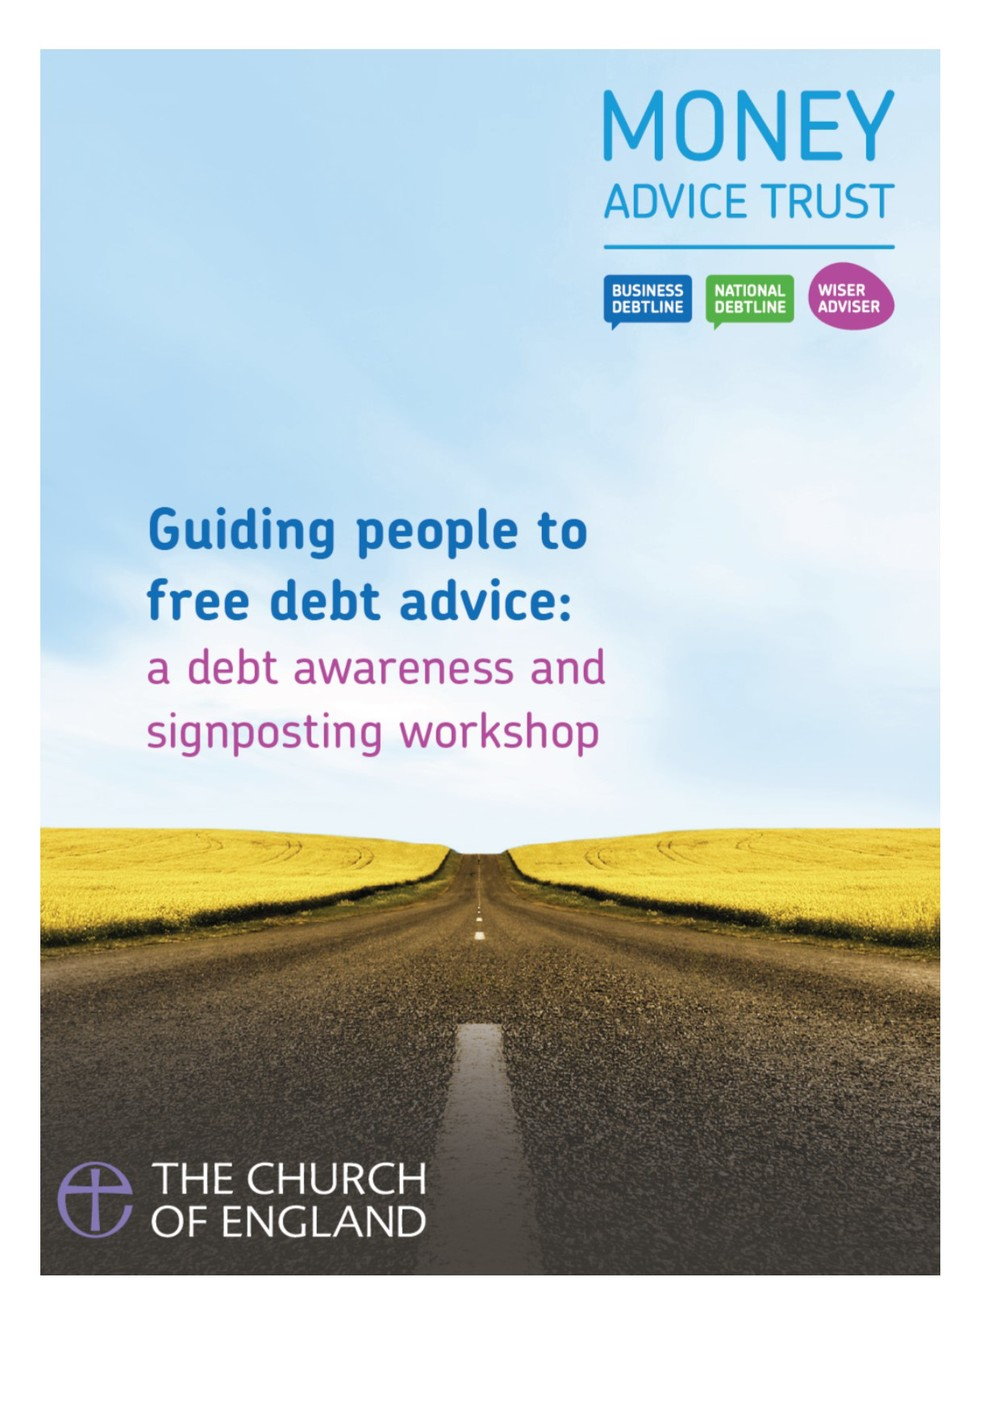 """What came across clearly is that signposting to debt advice makes a huge difference to people's lives"" ""The workshop  provoked lively discussions in the group and as a church we're thinking of ways to follow up on what was discussed"""